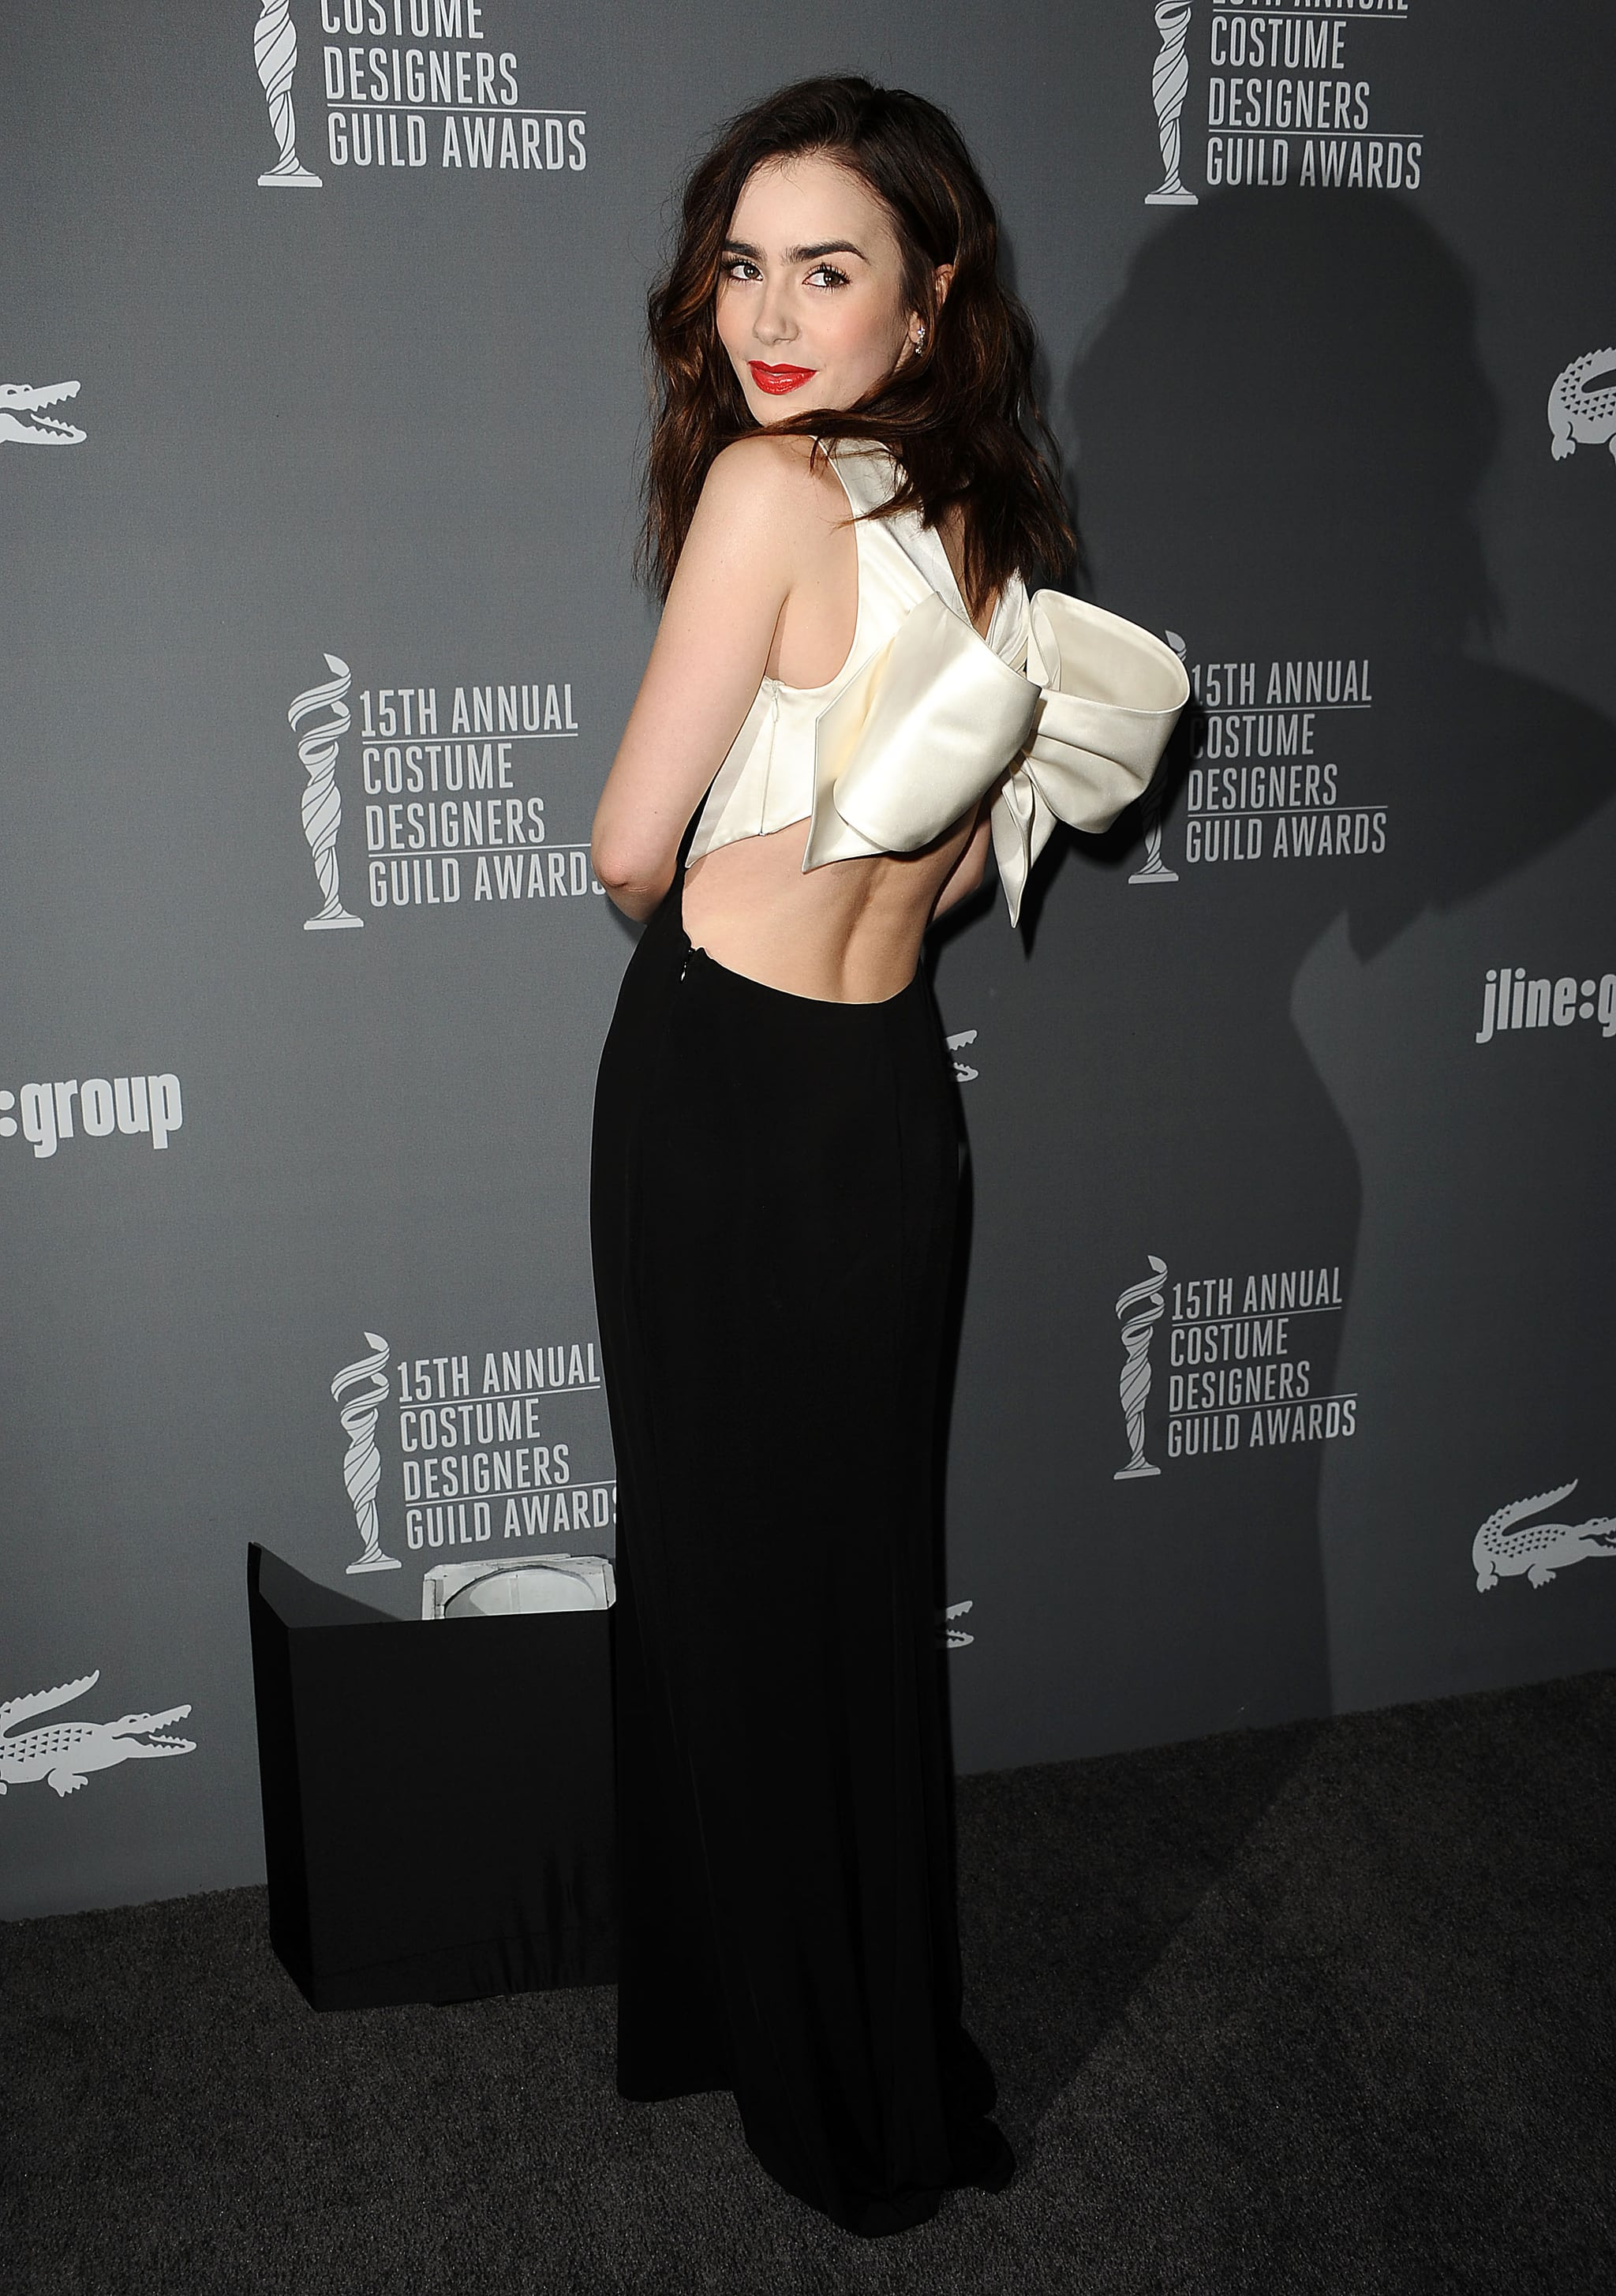 Lily Collins wore Paule Ka at the Costume Designers Guild Awards in Los Angeles.